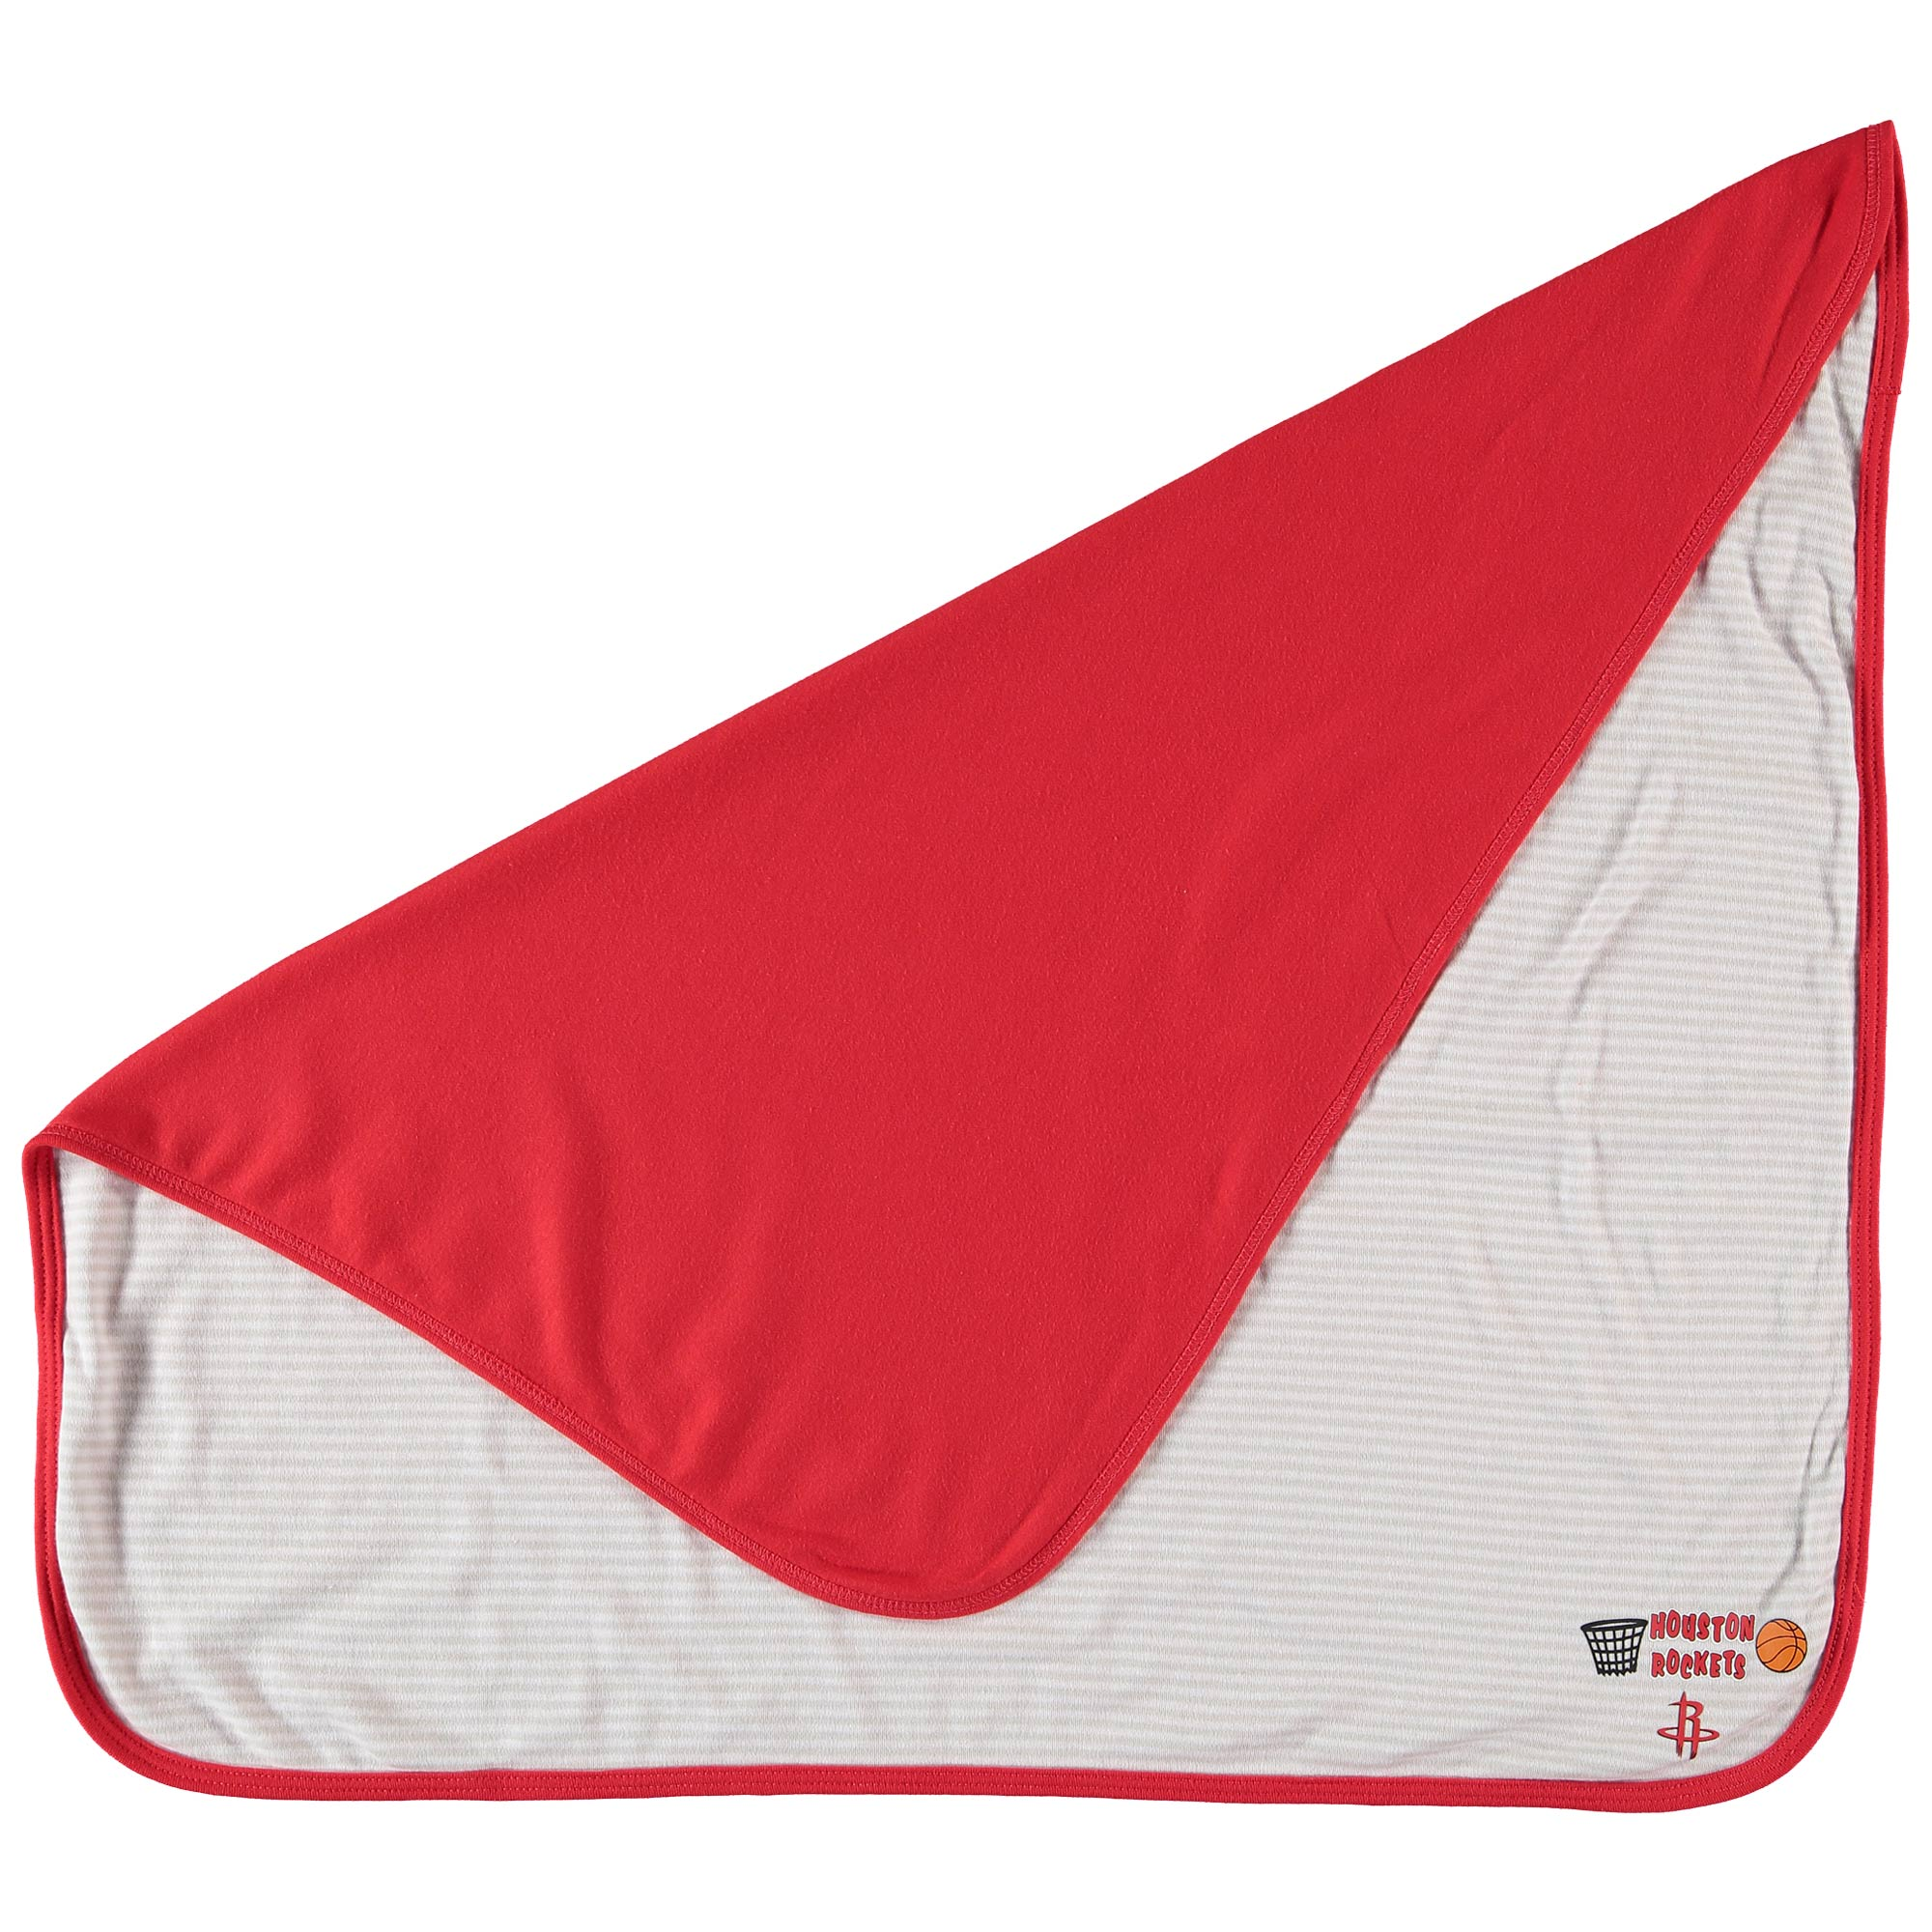 Houston Rockets Infant Lil Kicker Baby Blanket - Red